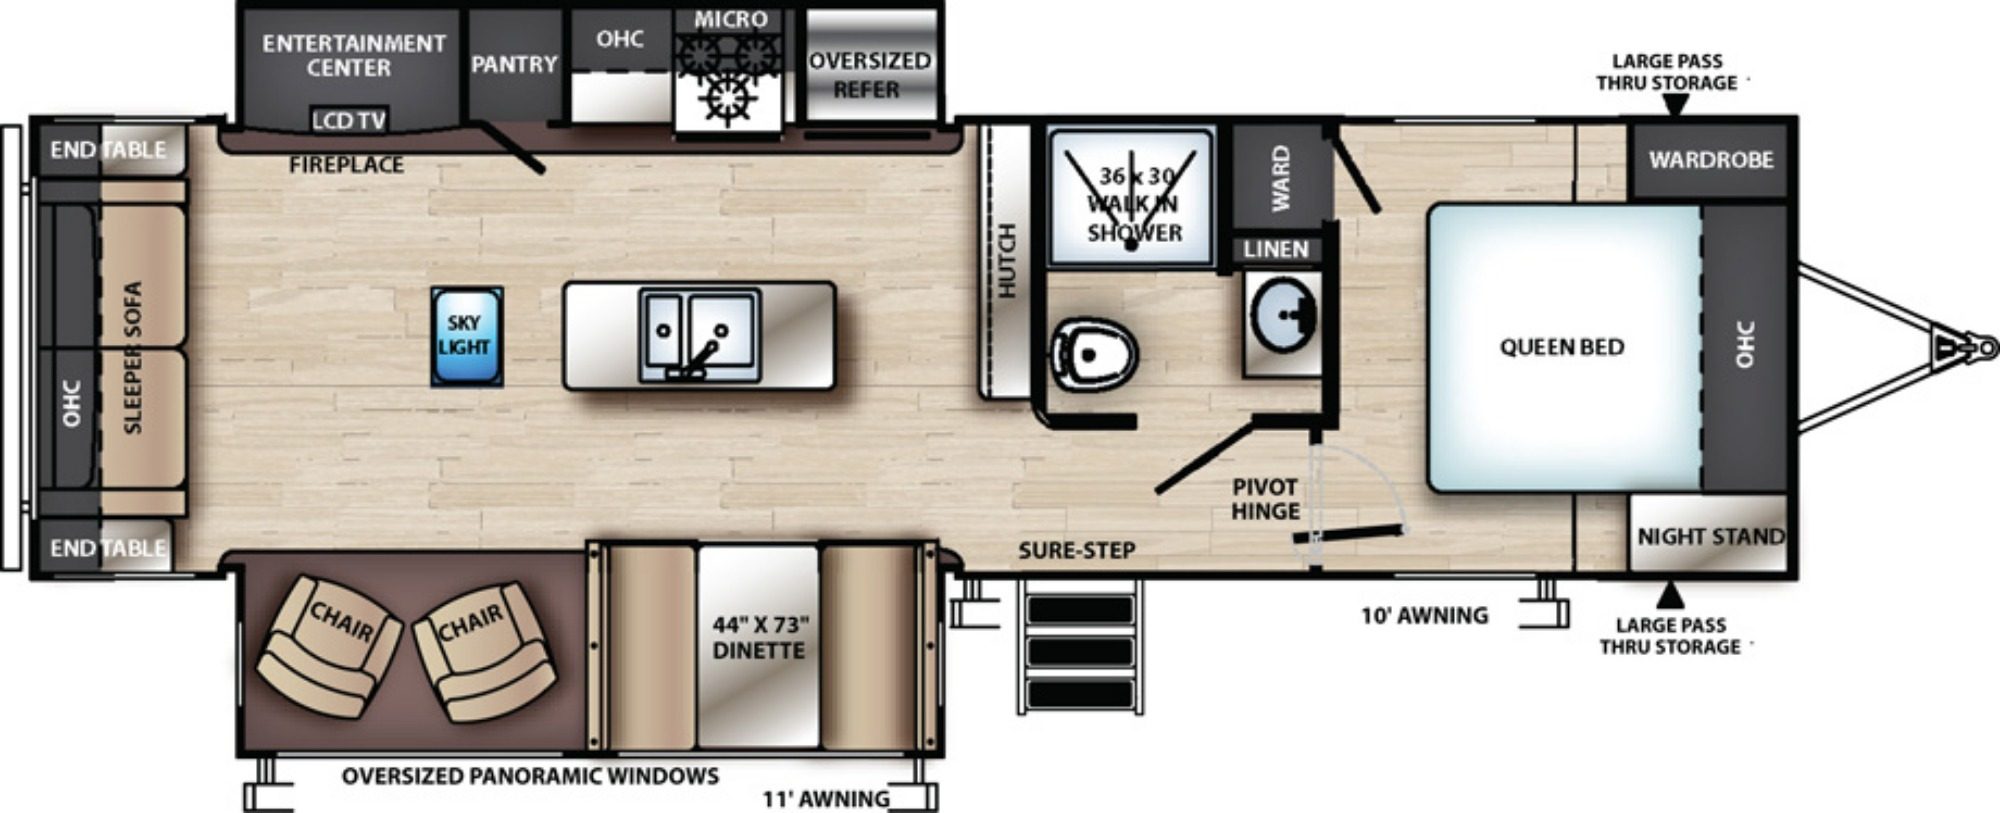 View Floor Plan for 2019 FOREST RIVER VIBE 28RL